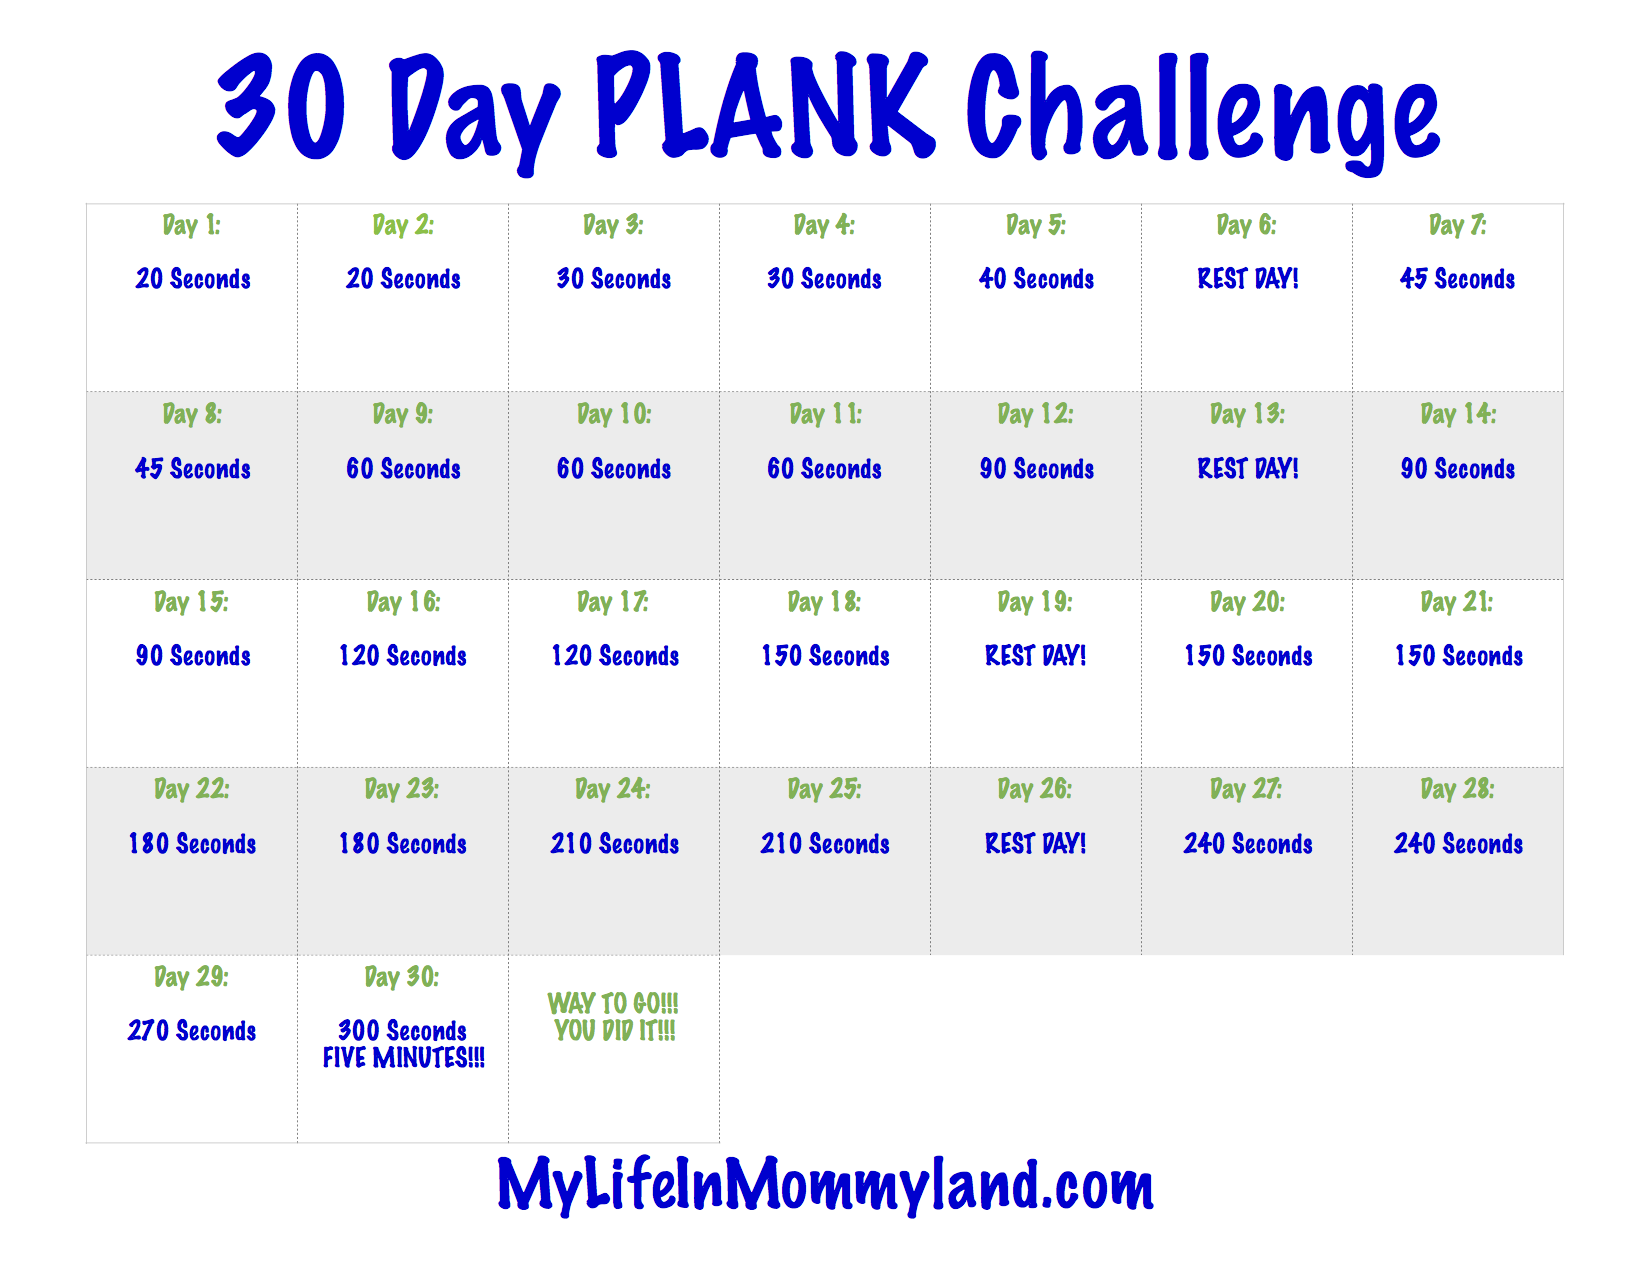 graphic relating to Plank Challenge Printable titled 30 Working day Mommyland Plank Issue My Everyday living inside of Mommyland